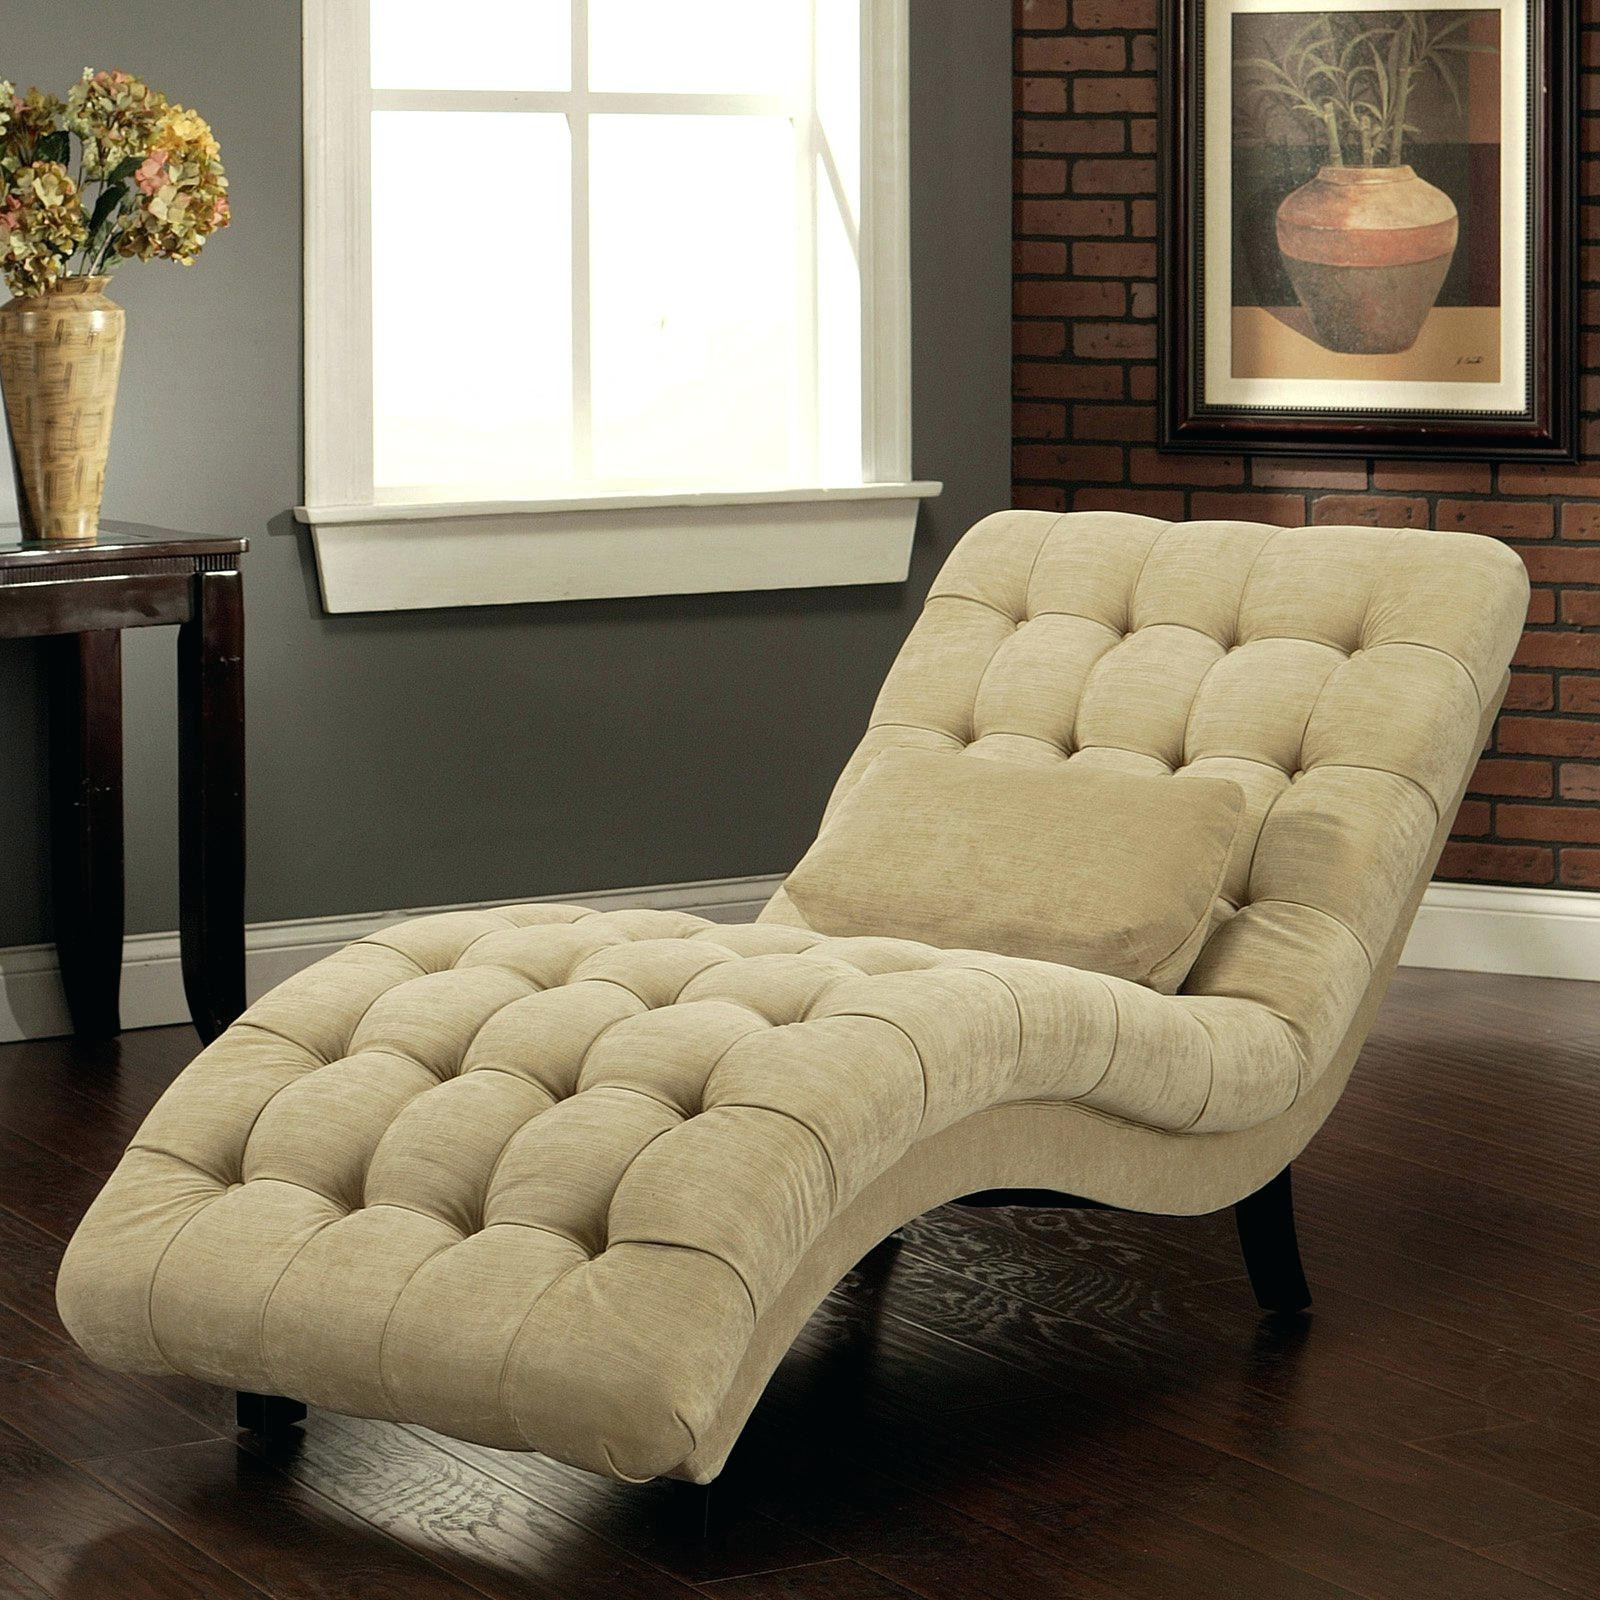 Well Known Microfiber Chaise Lounge Chairs In Awesome Microfiber Chaise Lounge Chair – Home (View 15 of 15)